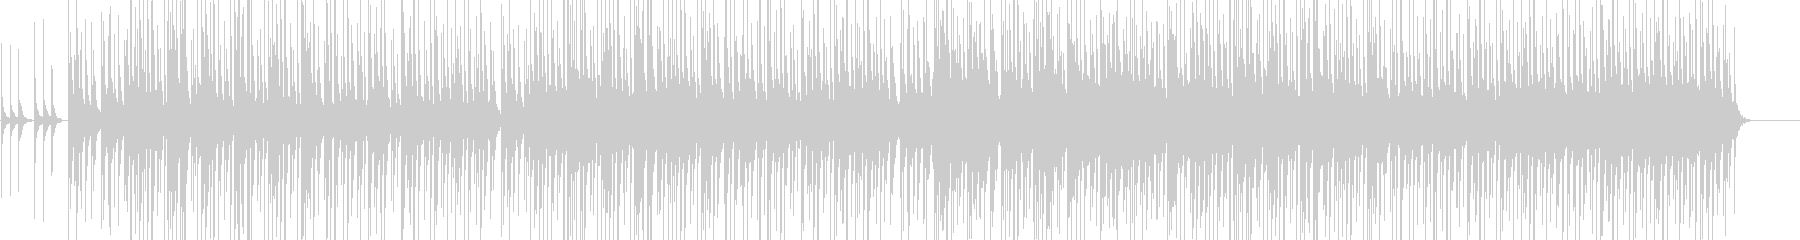 Okinawa-style Hobobon BGM using the Sanshin's unreproduced waveform